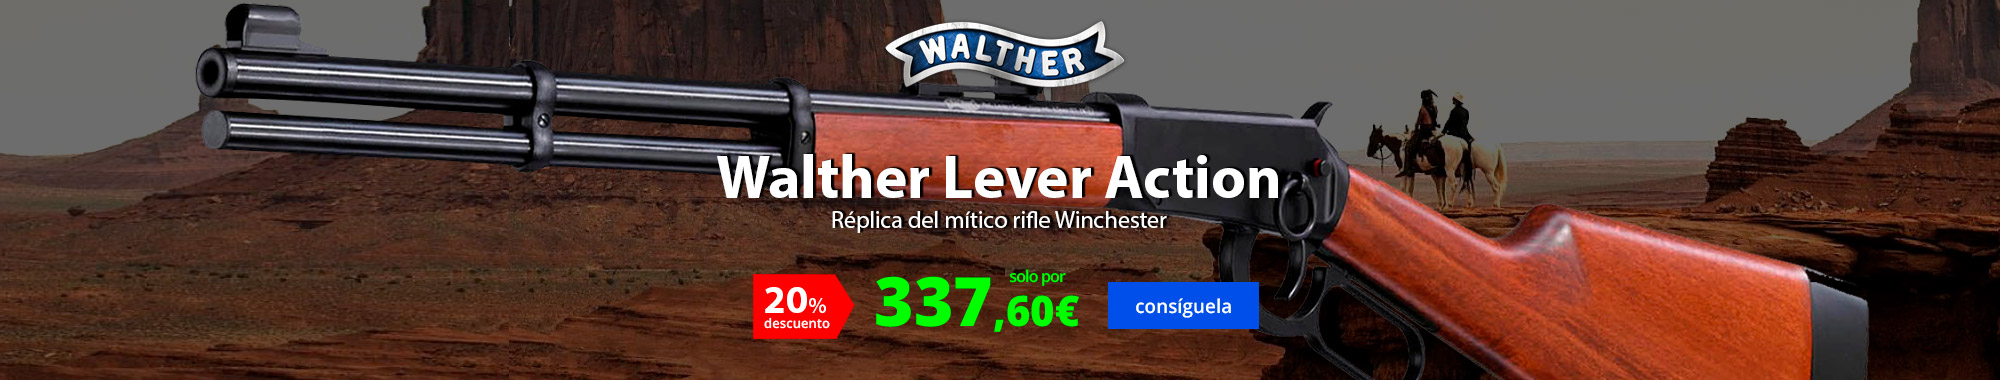 -20% Walther Lever Action